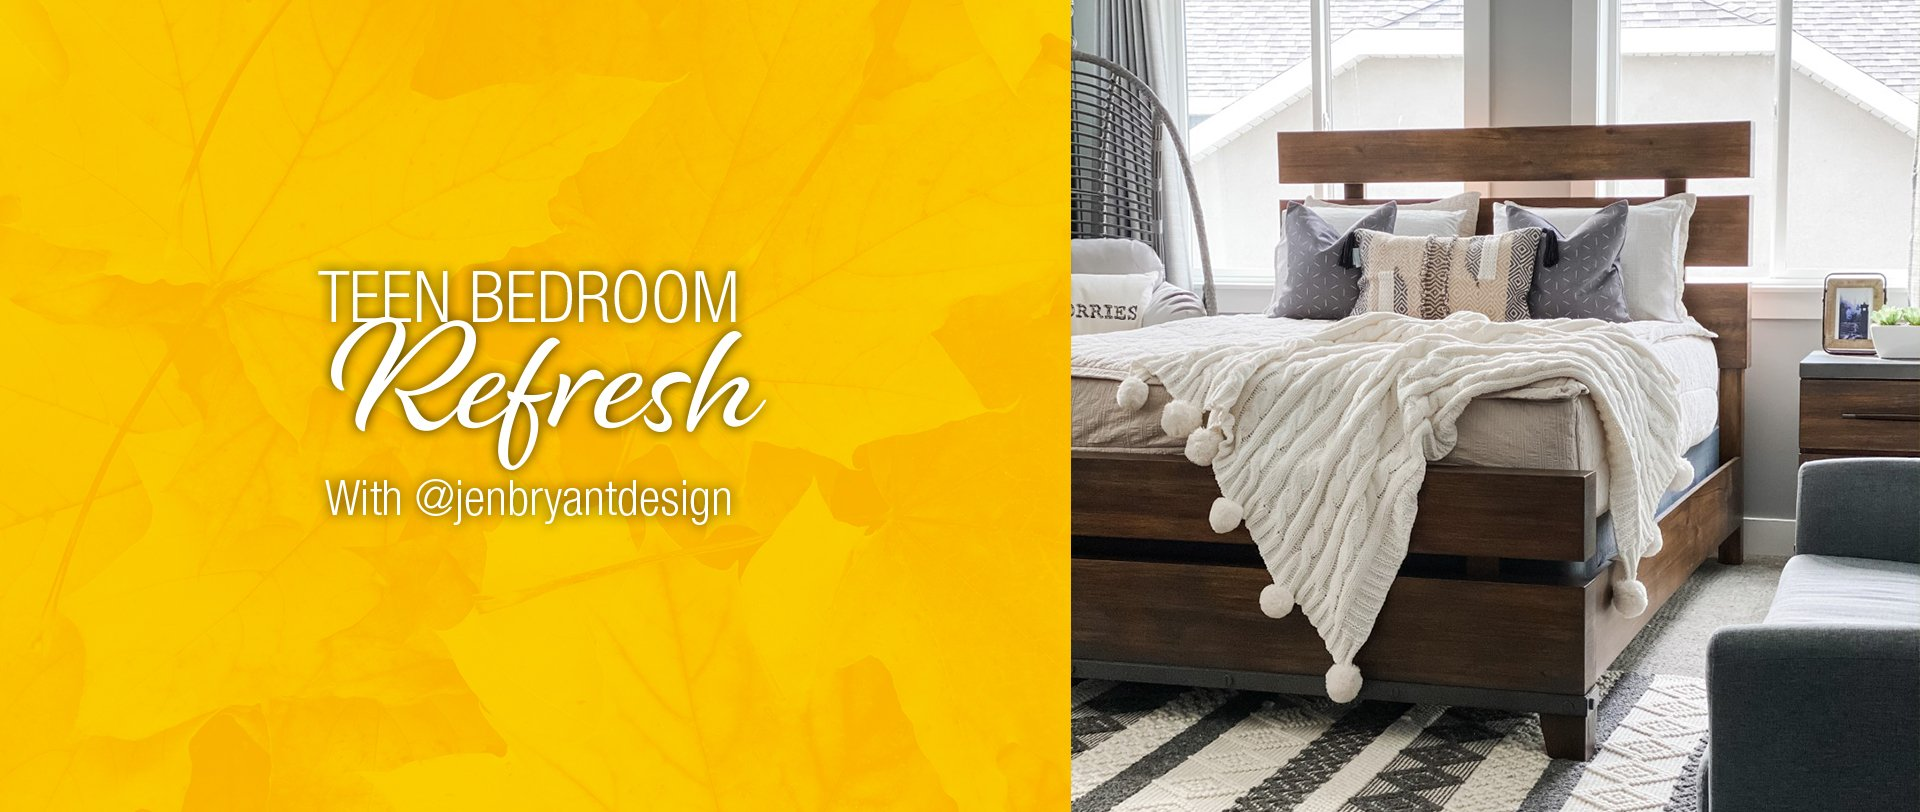 Teen Bedroom Refresh With @jenbryantdesign